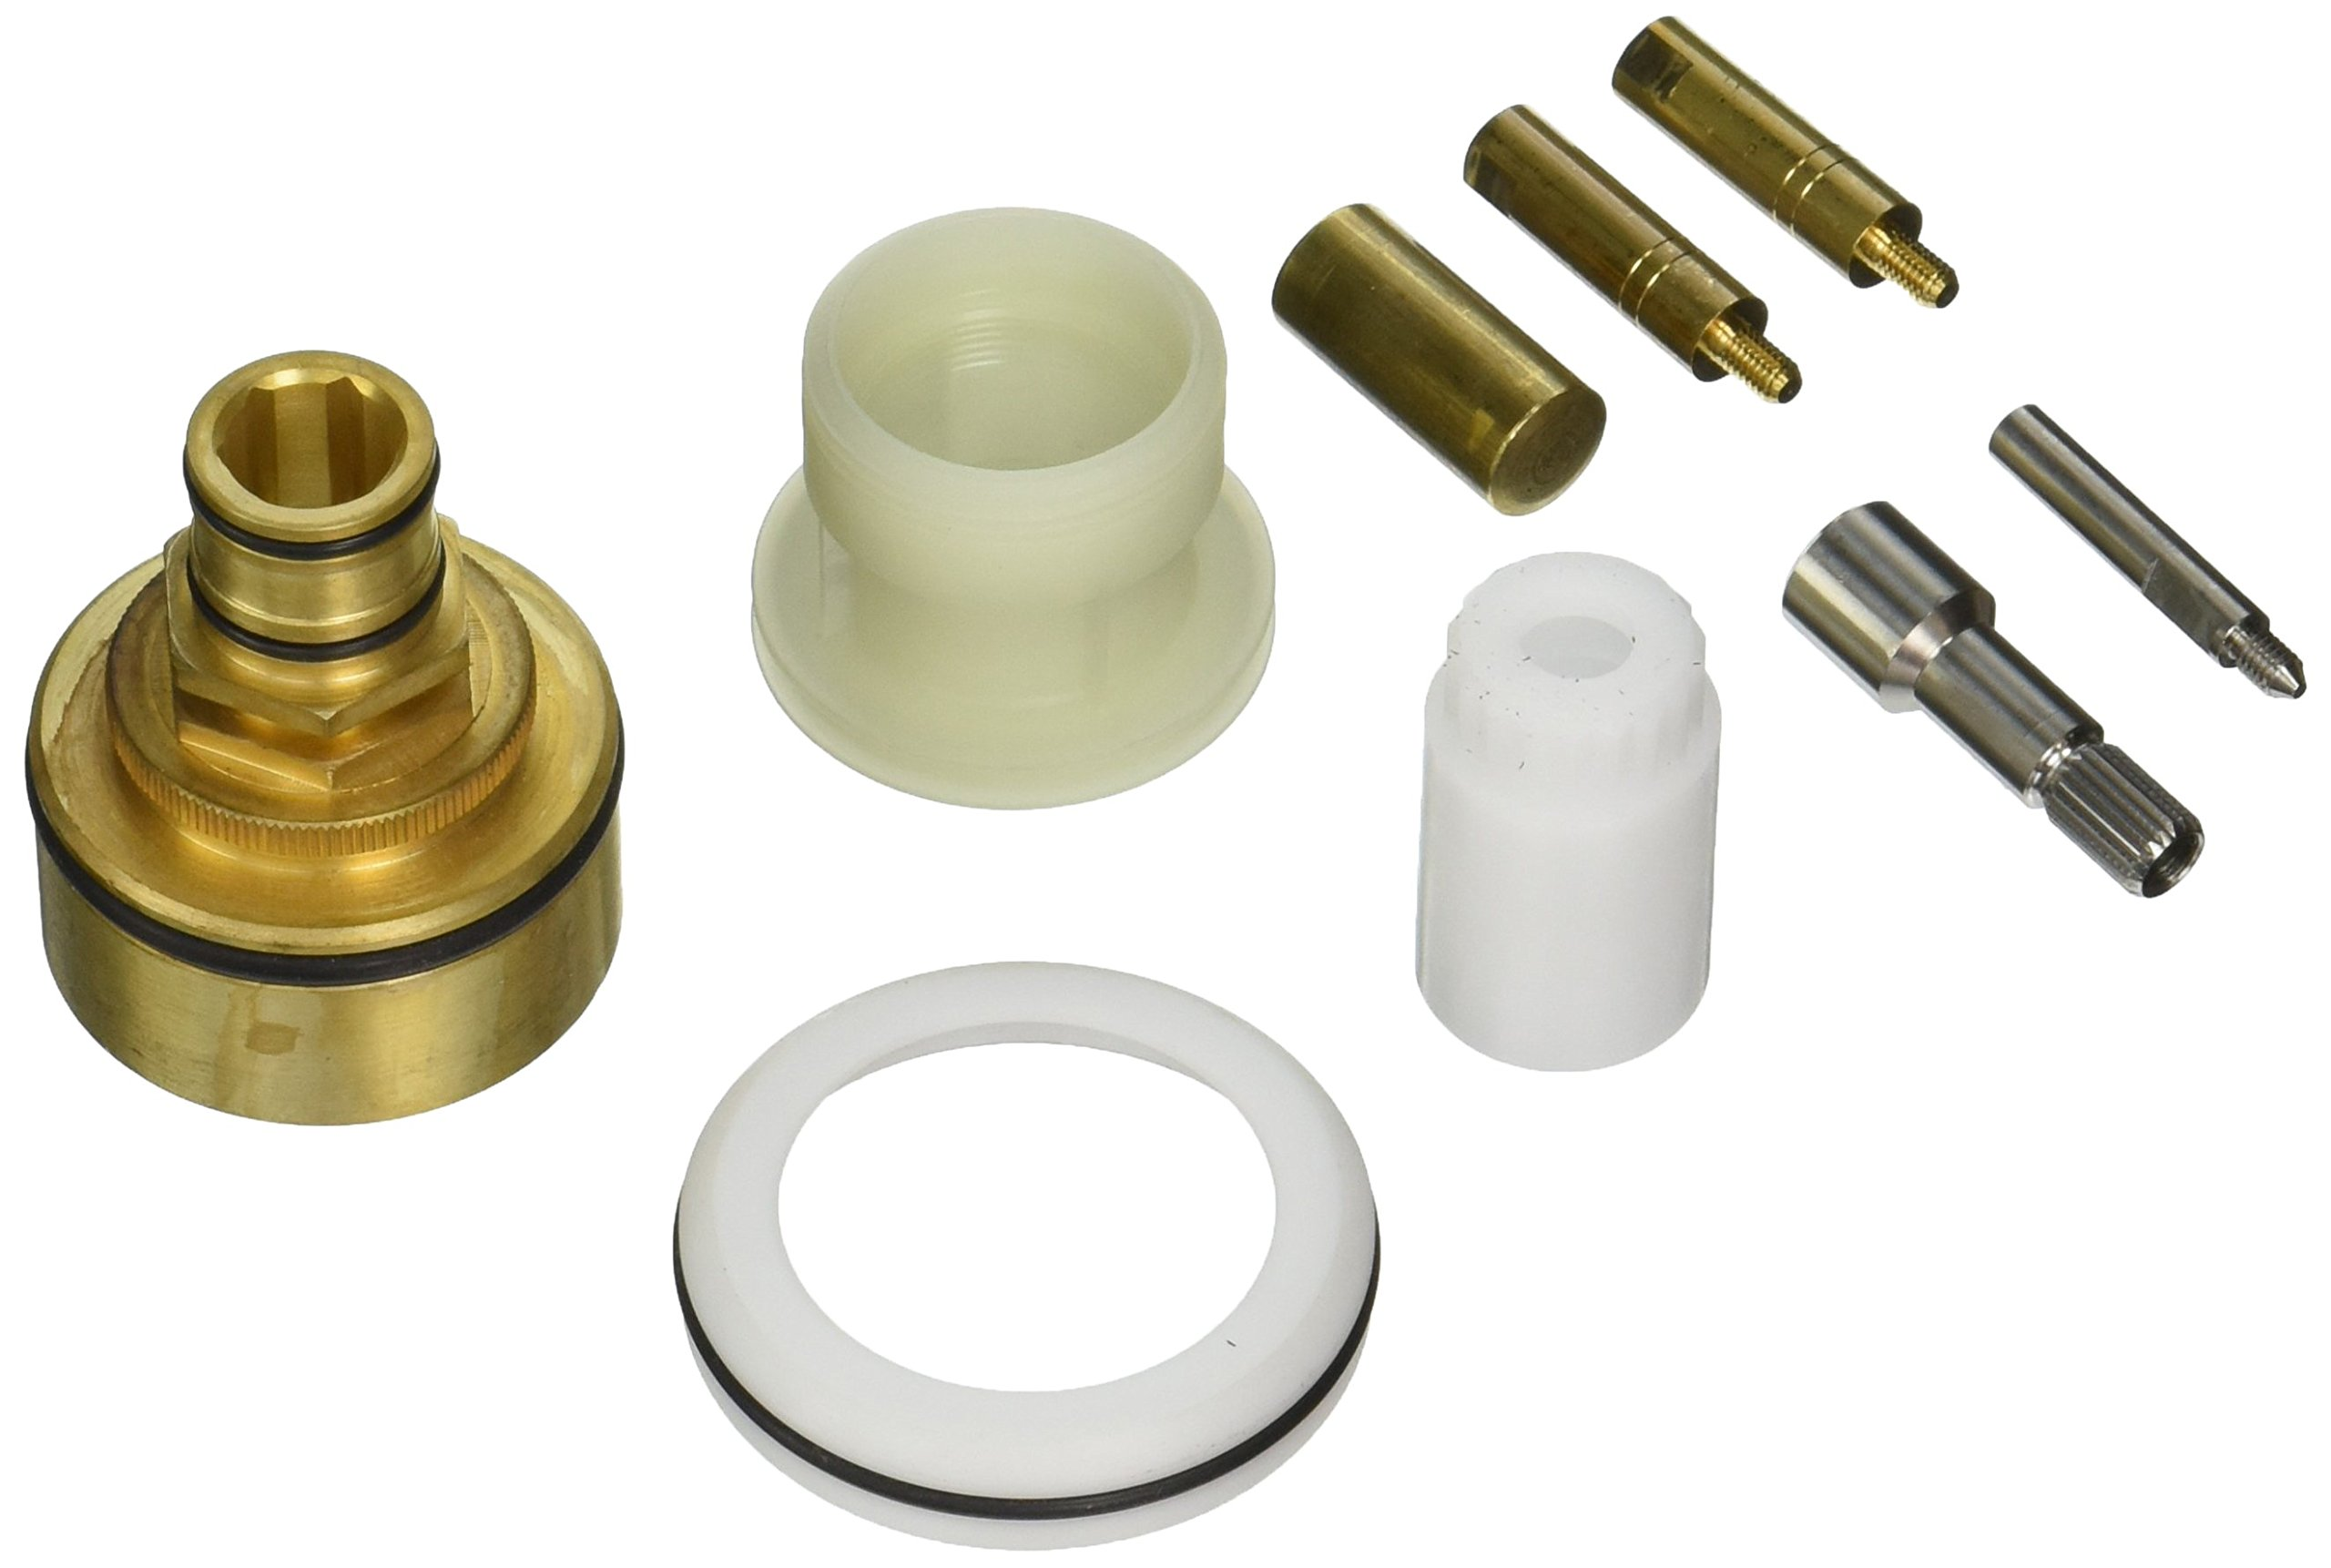 1-1/8 In. Extension Kit For Grohtherm Rough-In Valves (34 123), (34 125), (34 126)